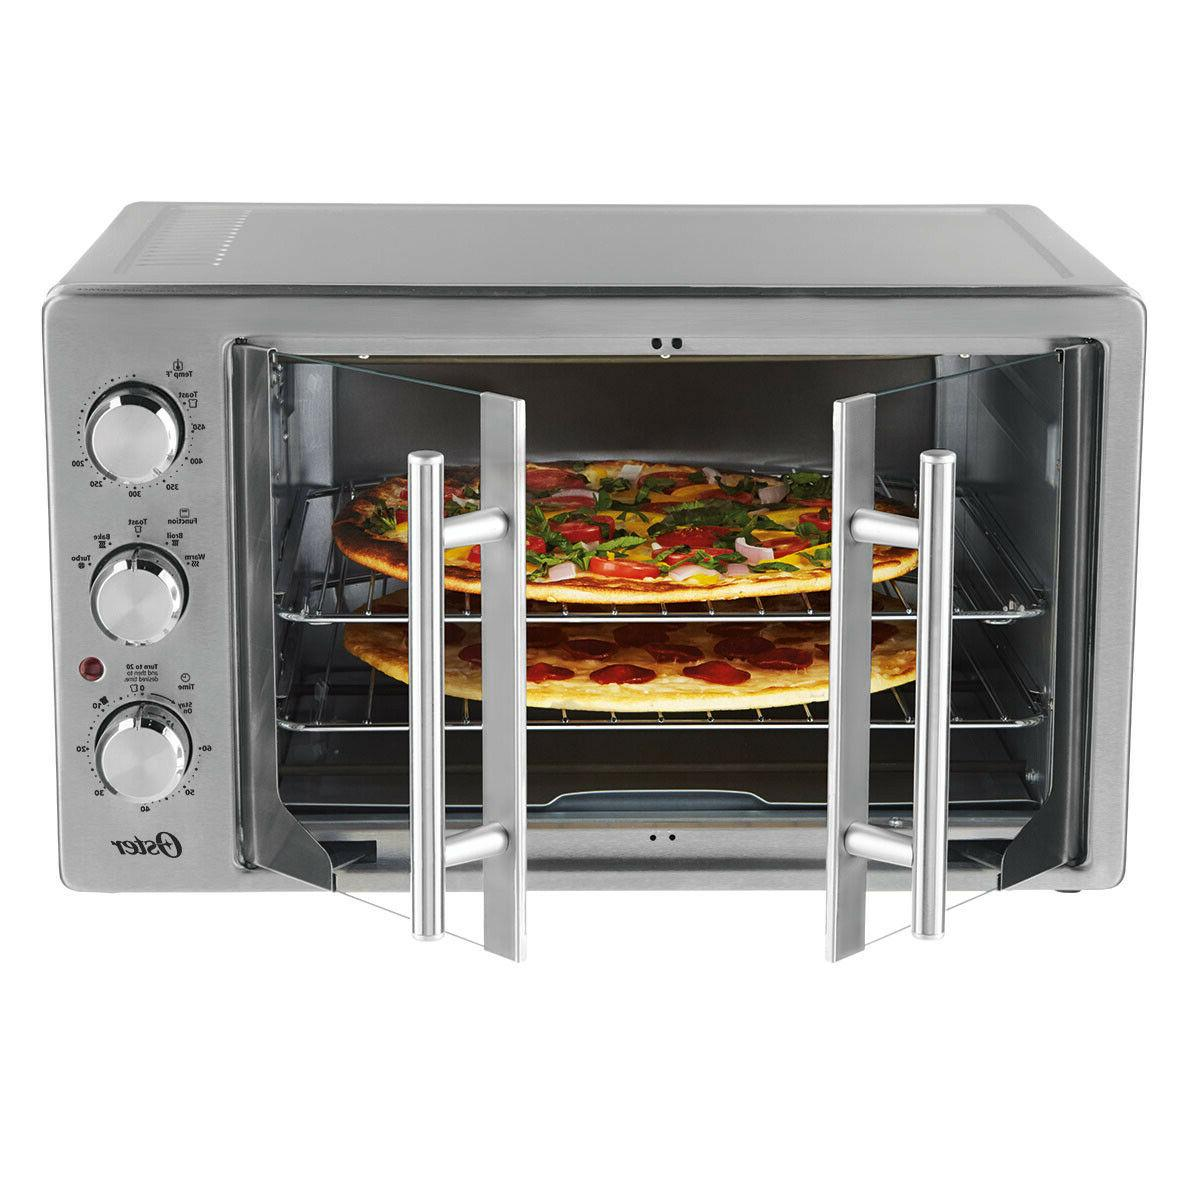 Oster Door Oven, Steel with Convection